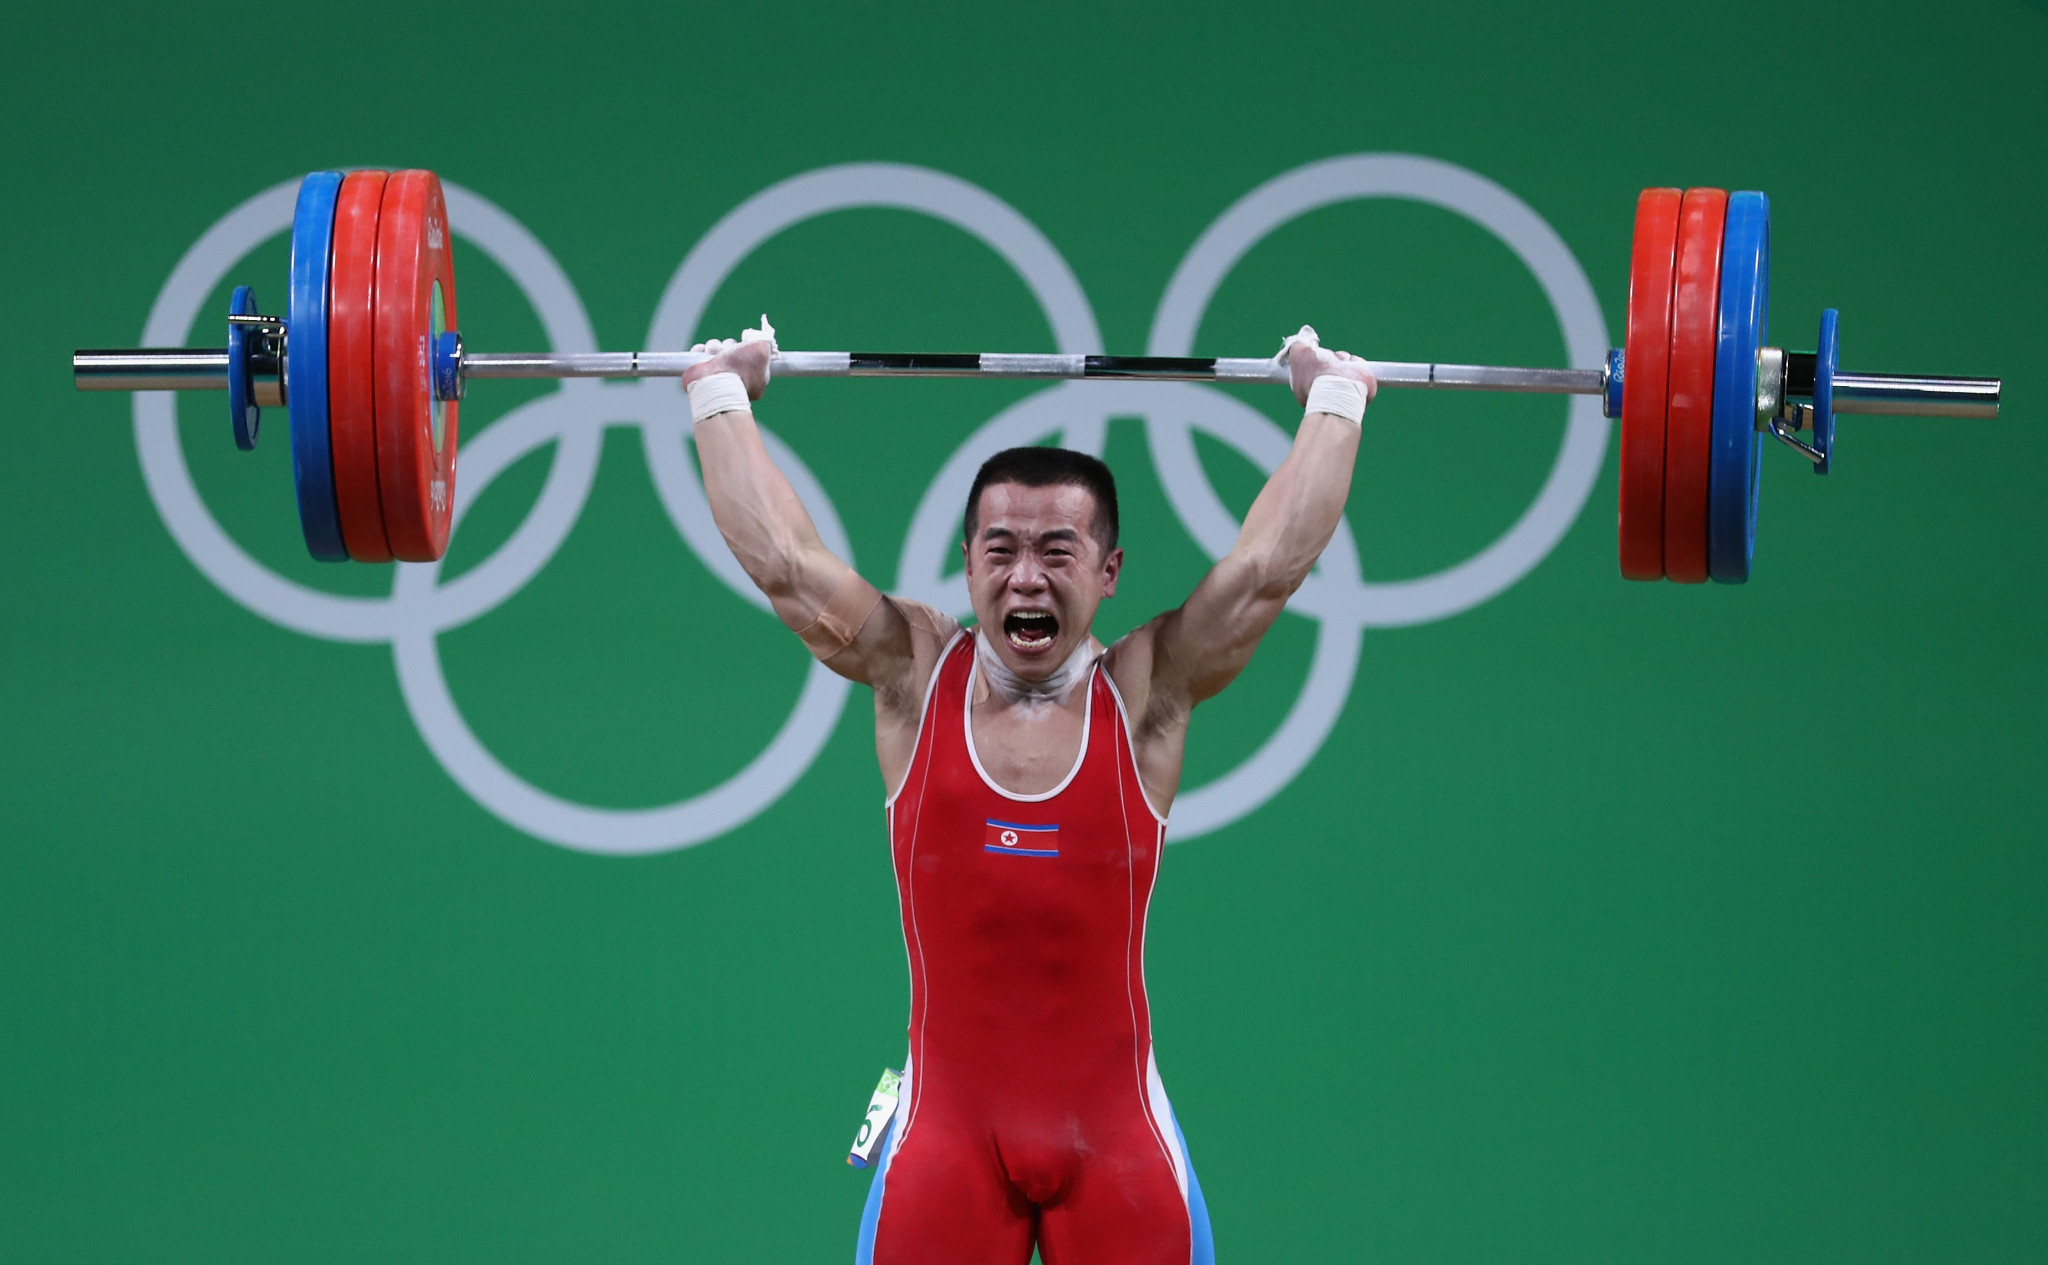 North Korean weightlifters such as Om Yun-chol have not been subject to international anti-doping tests in more than a year because of the pandemic